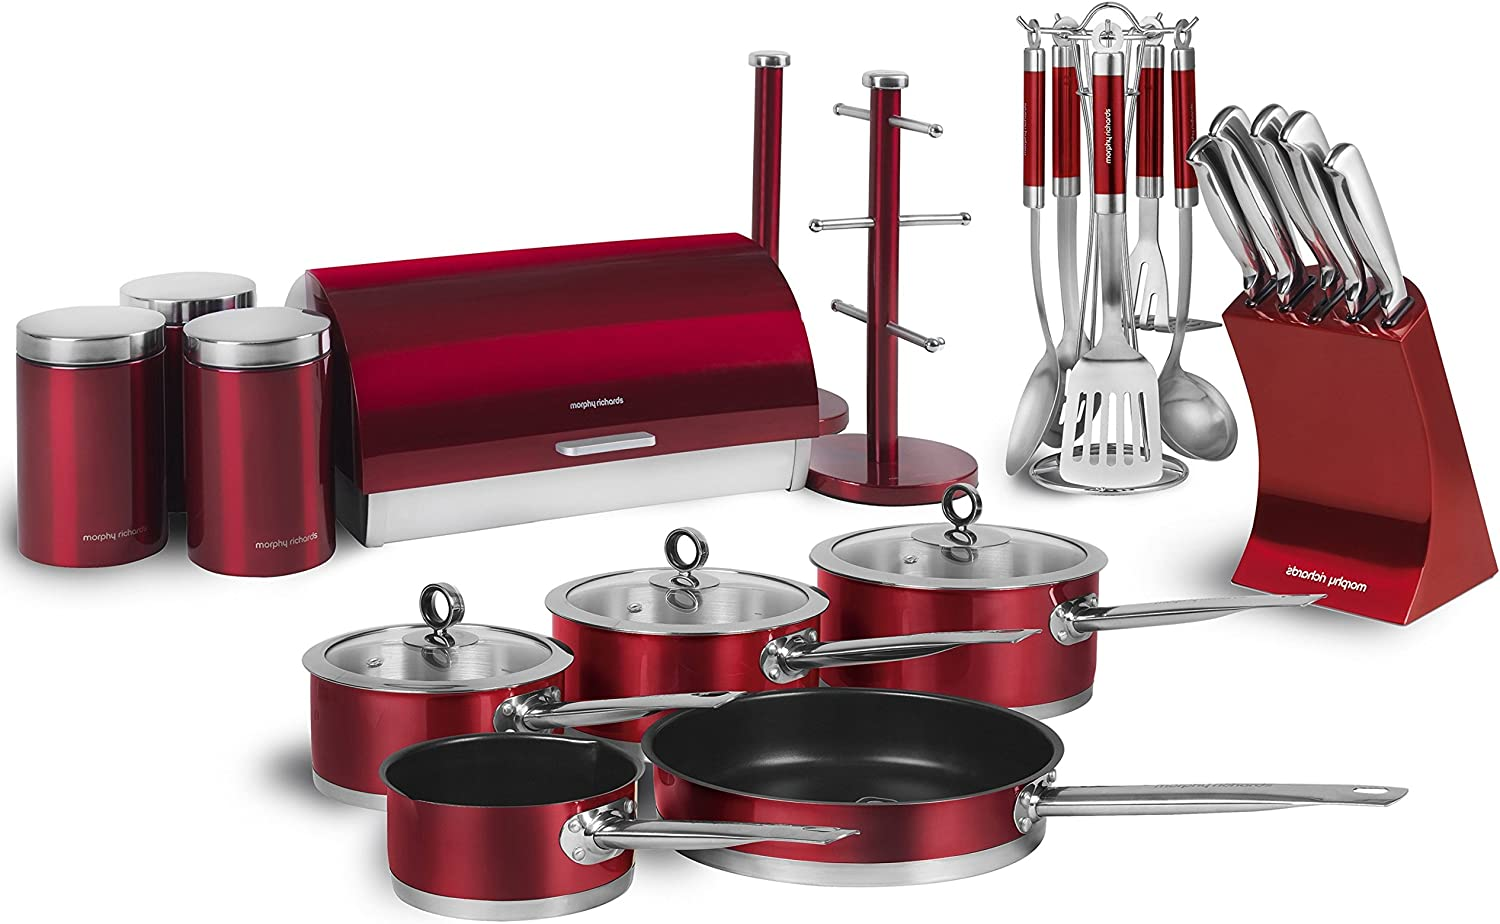 Morphy Richards Accents 9 Piece Kitchen Set, Red, Stainless Steel,  9x9.9x9 cm